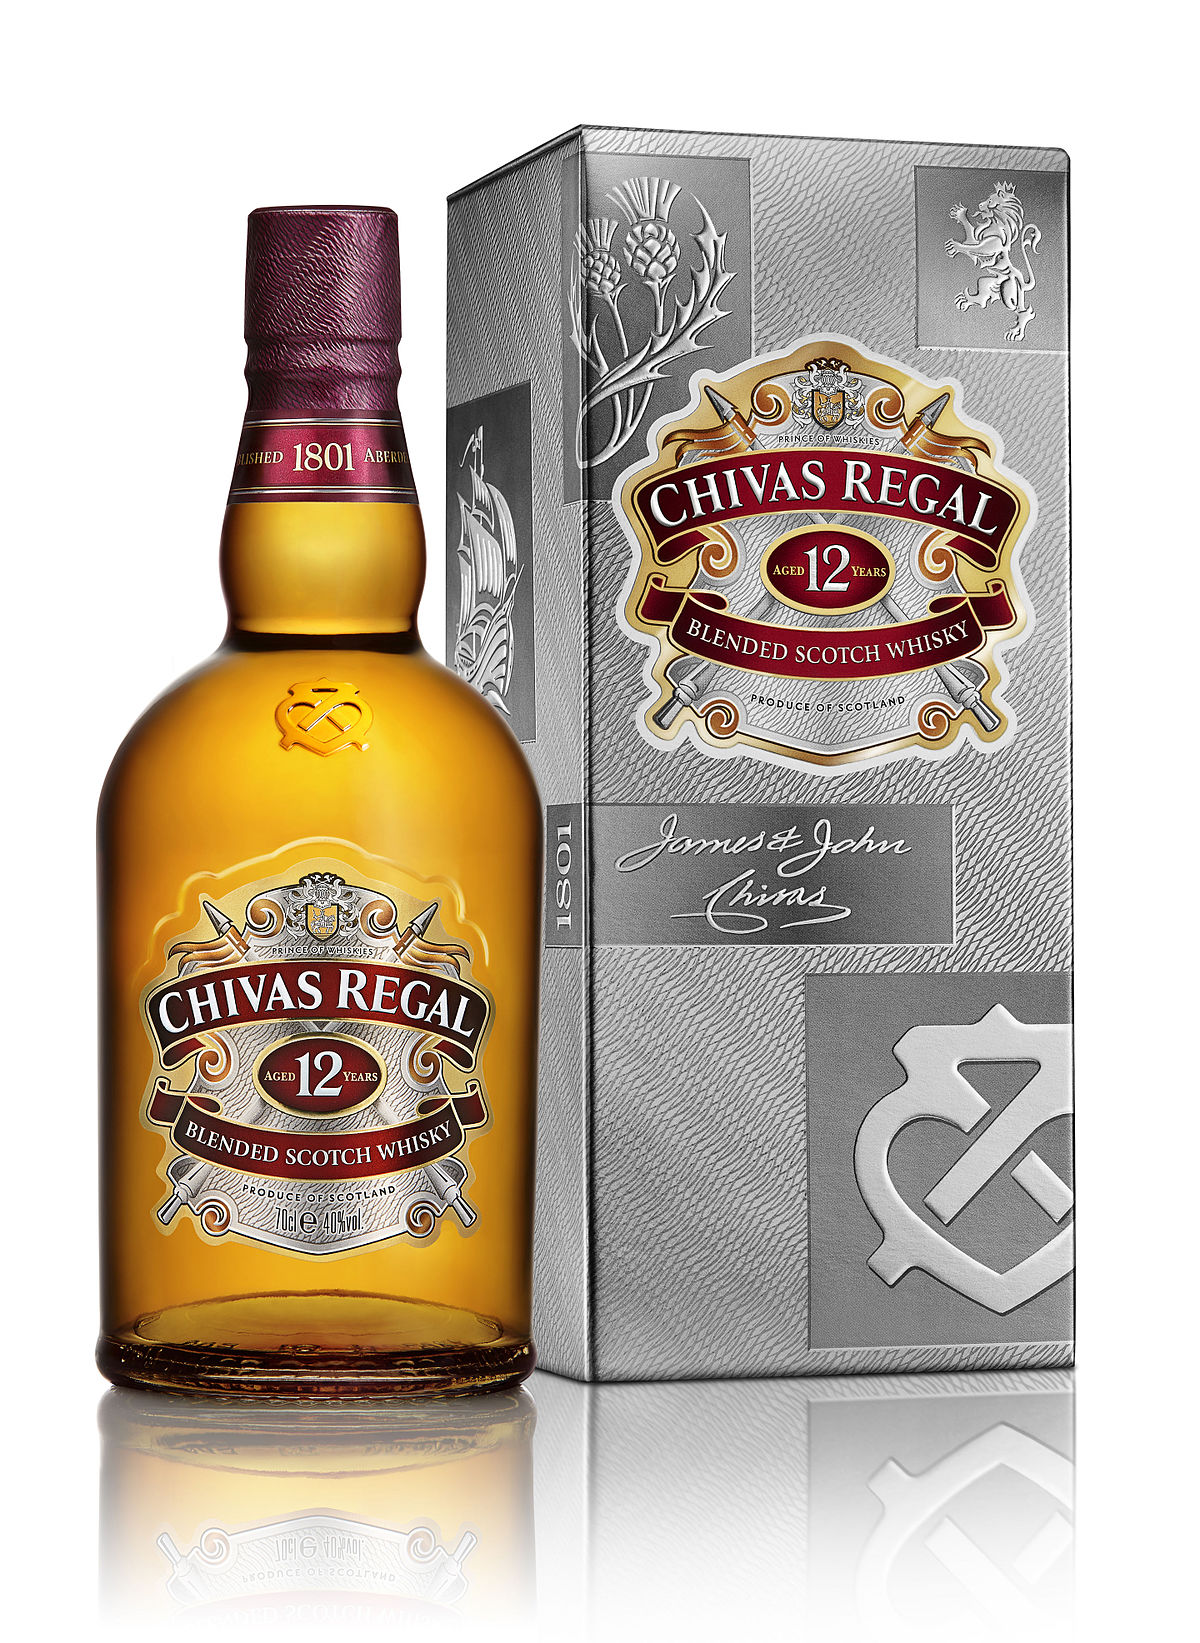 Dating a bottle of chivas regal